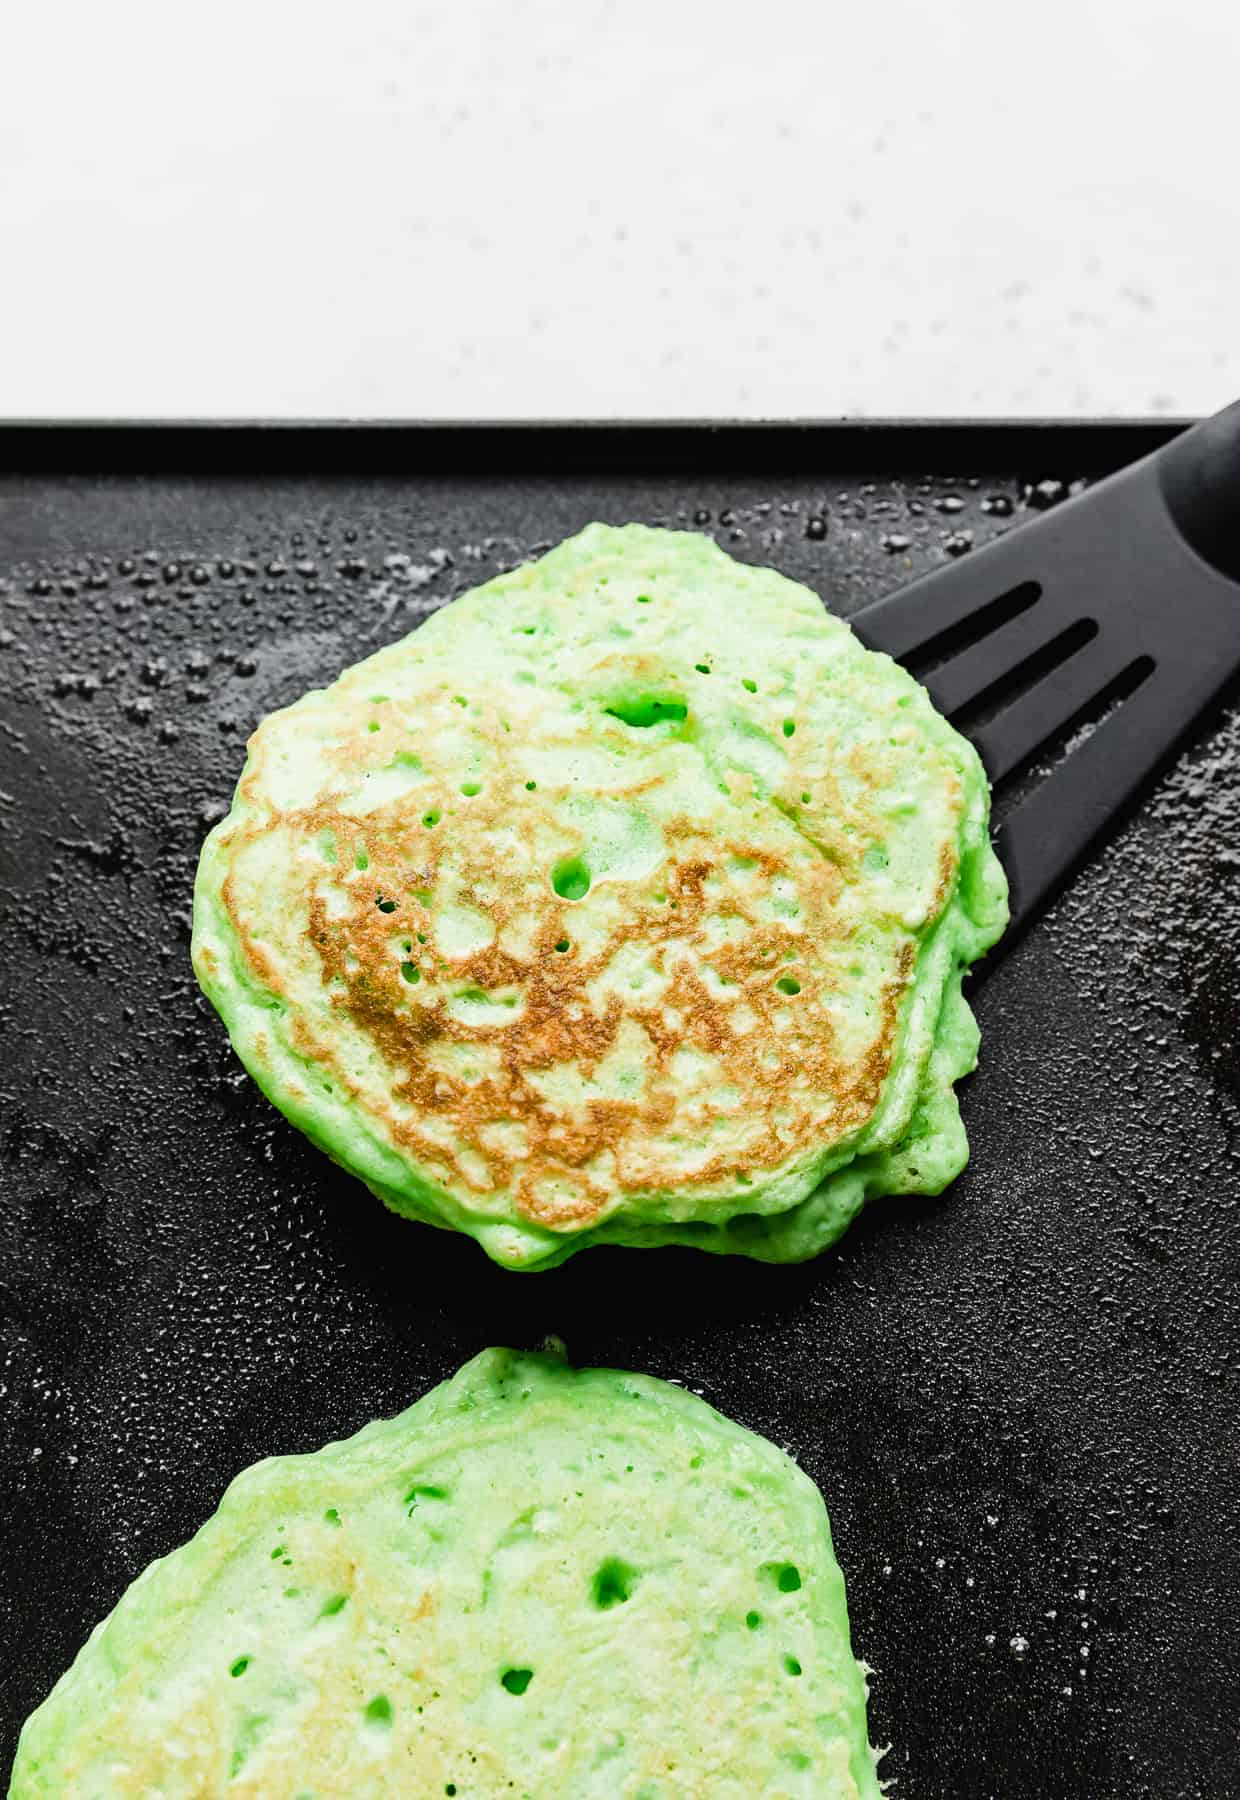 A green pancake on a black skillet with a black spatula underneath it.